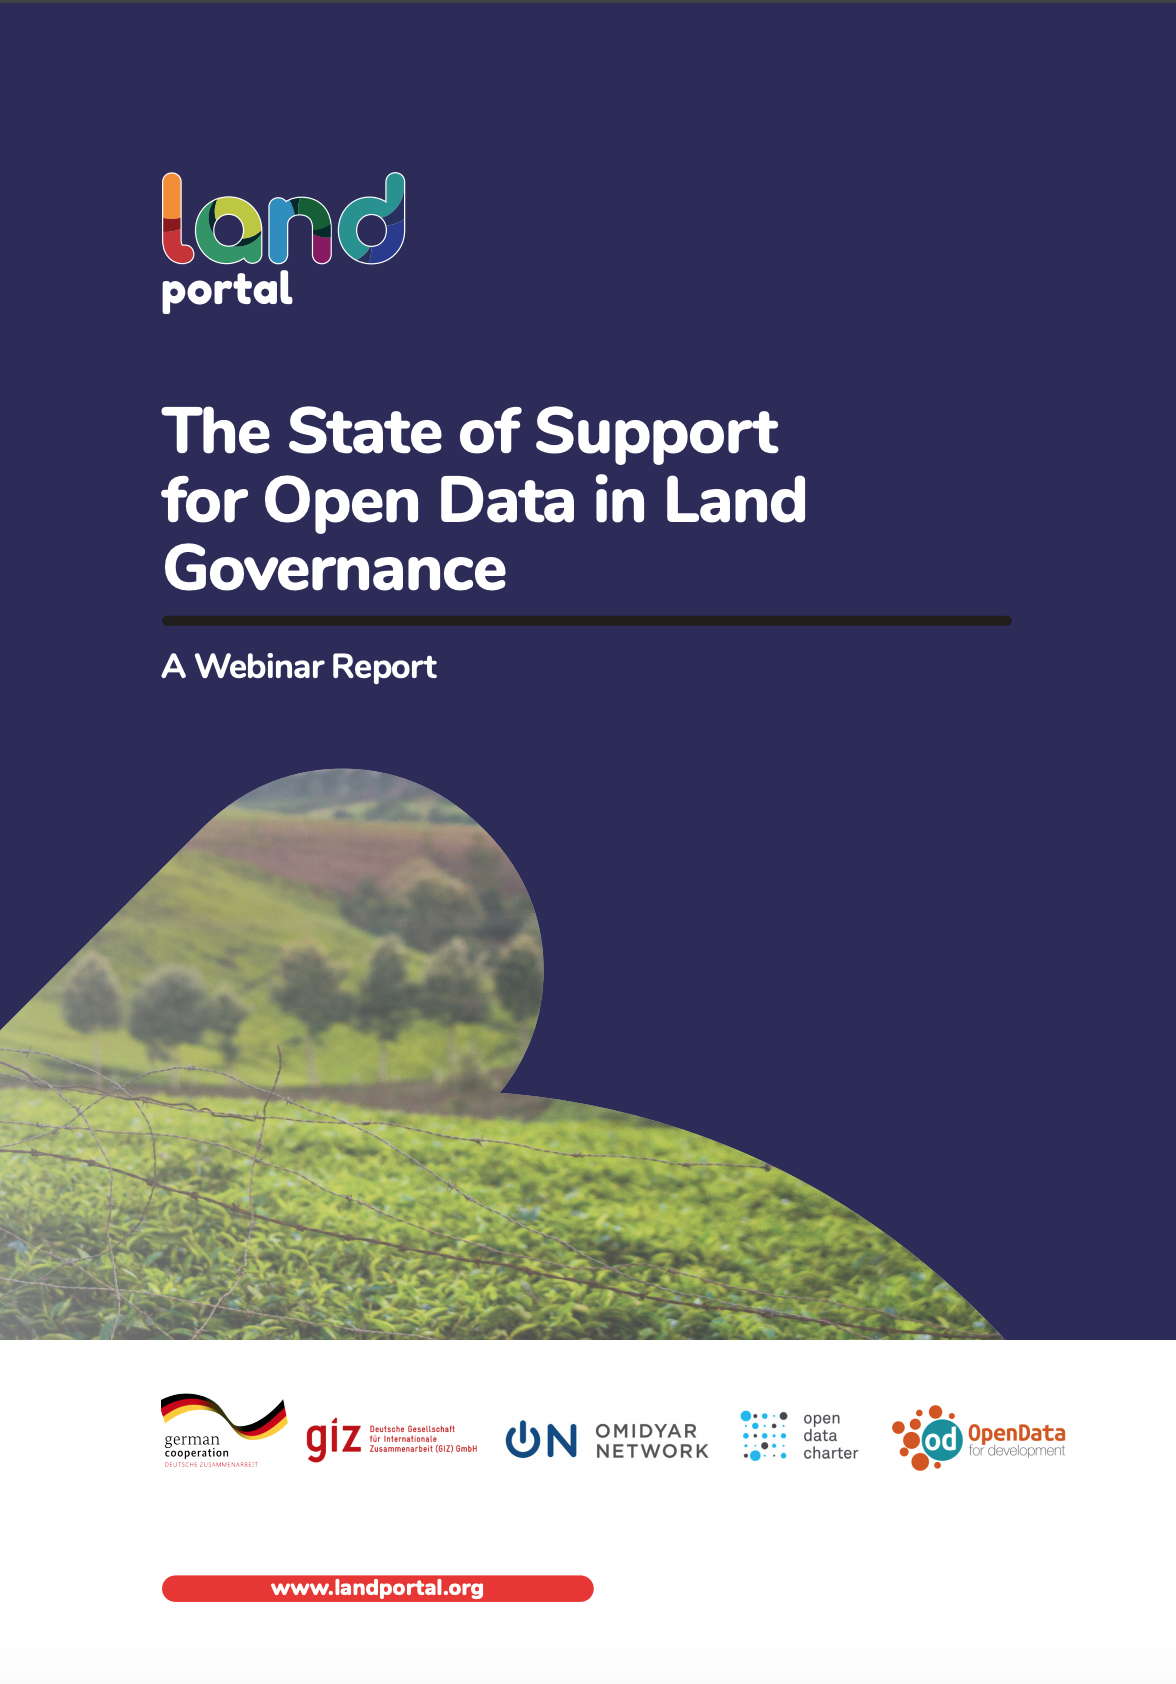 The State of Support for Open Data in Land Governance cover image